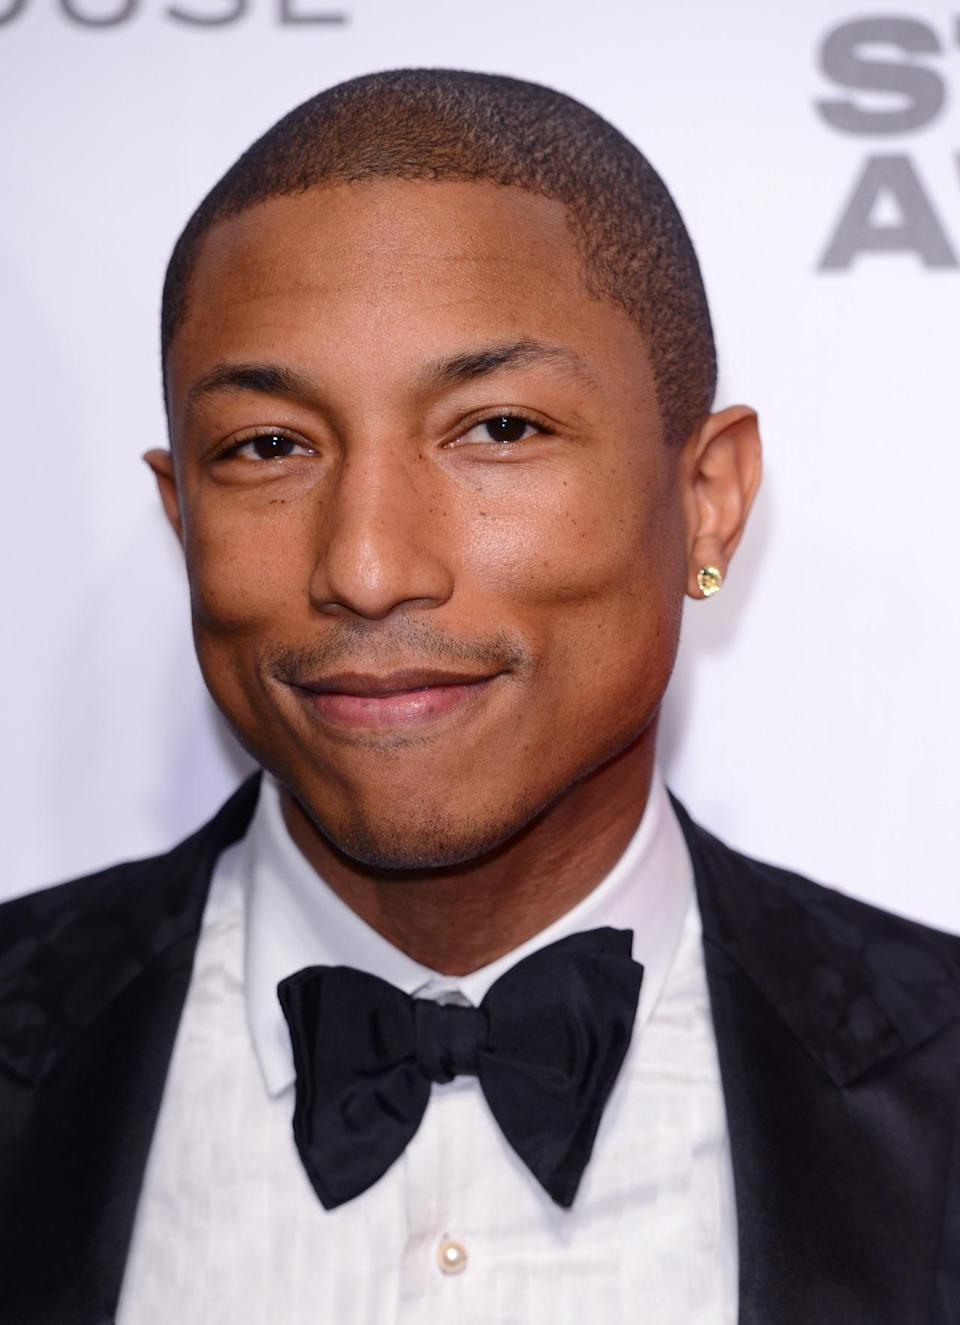 <p>Pharrell Williams still looks fly, with less hair though. <i>(Photo: Getty Images)</i></p>